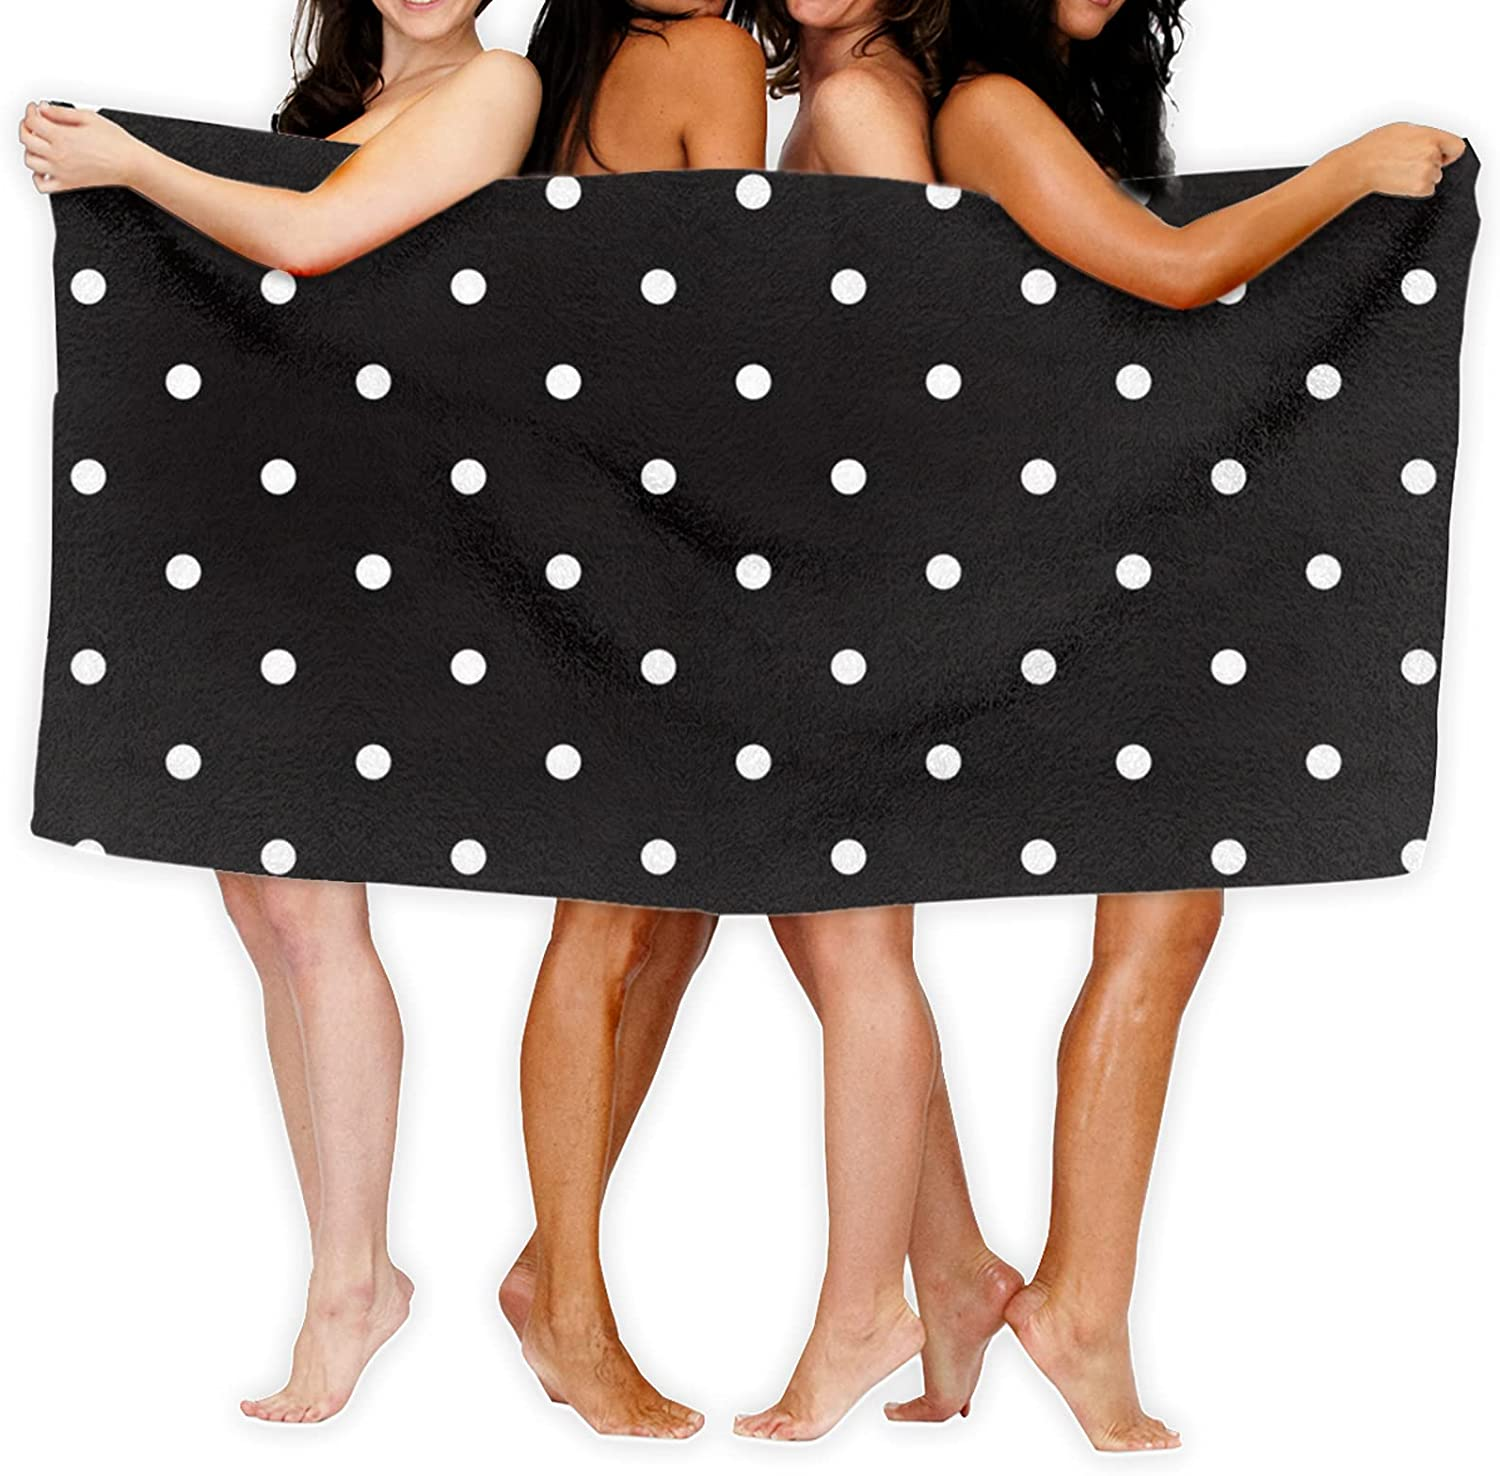 Beauty products Printed Bath Towels Soft Cheap Beach Absorbent Fluffy Bathroo